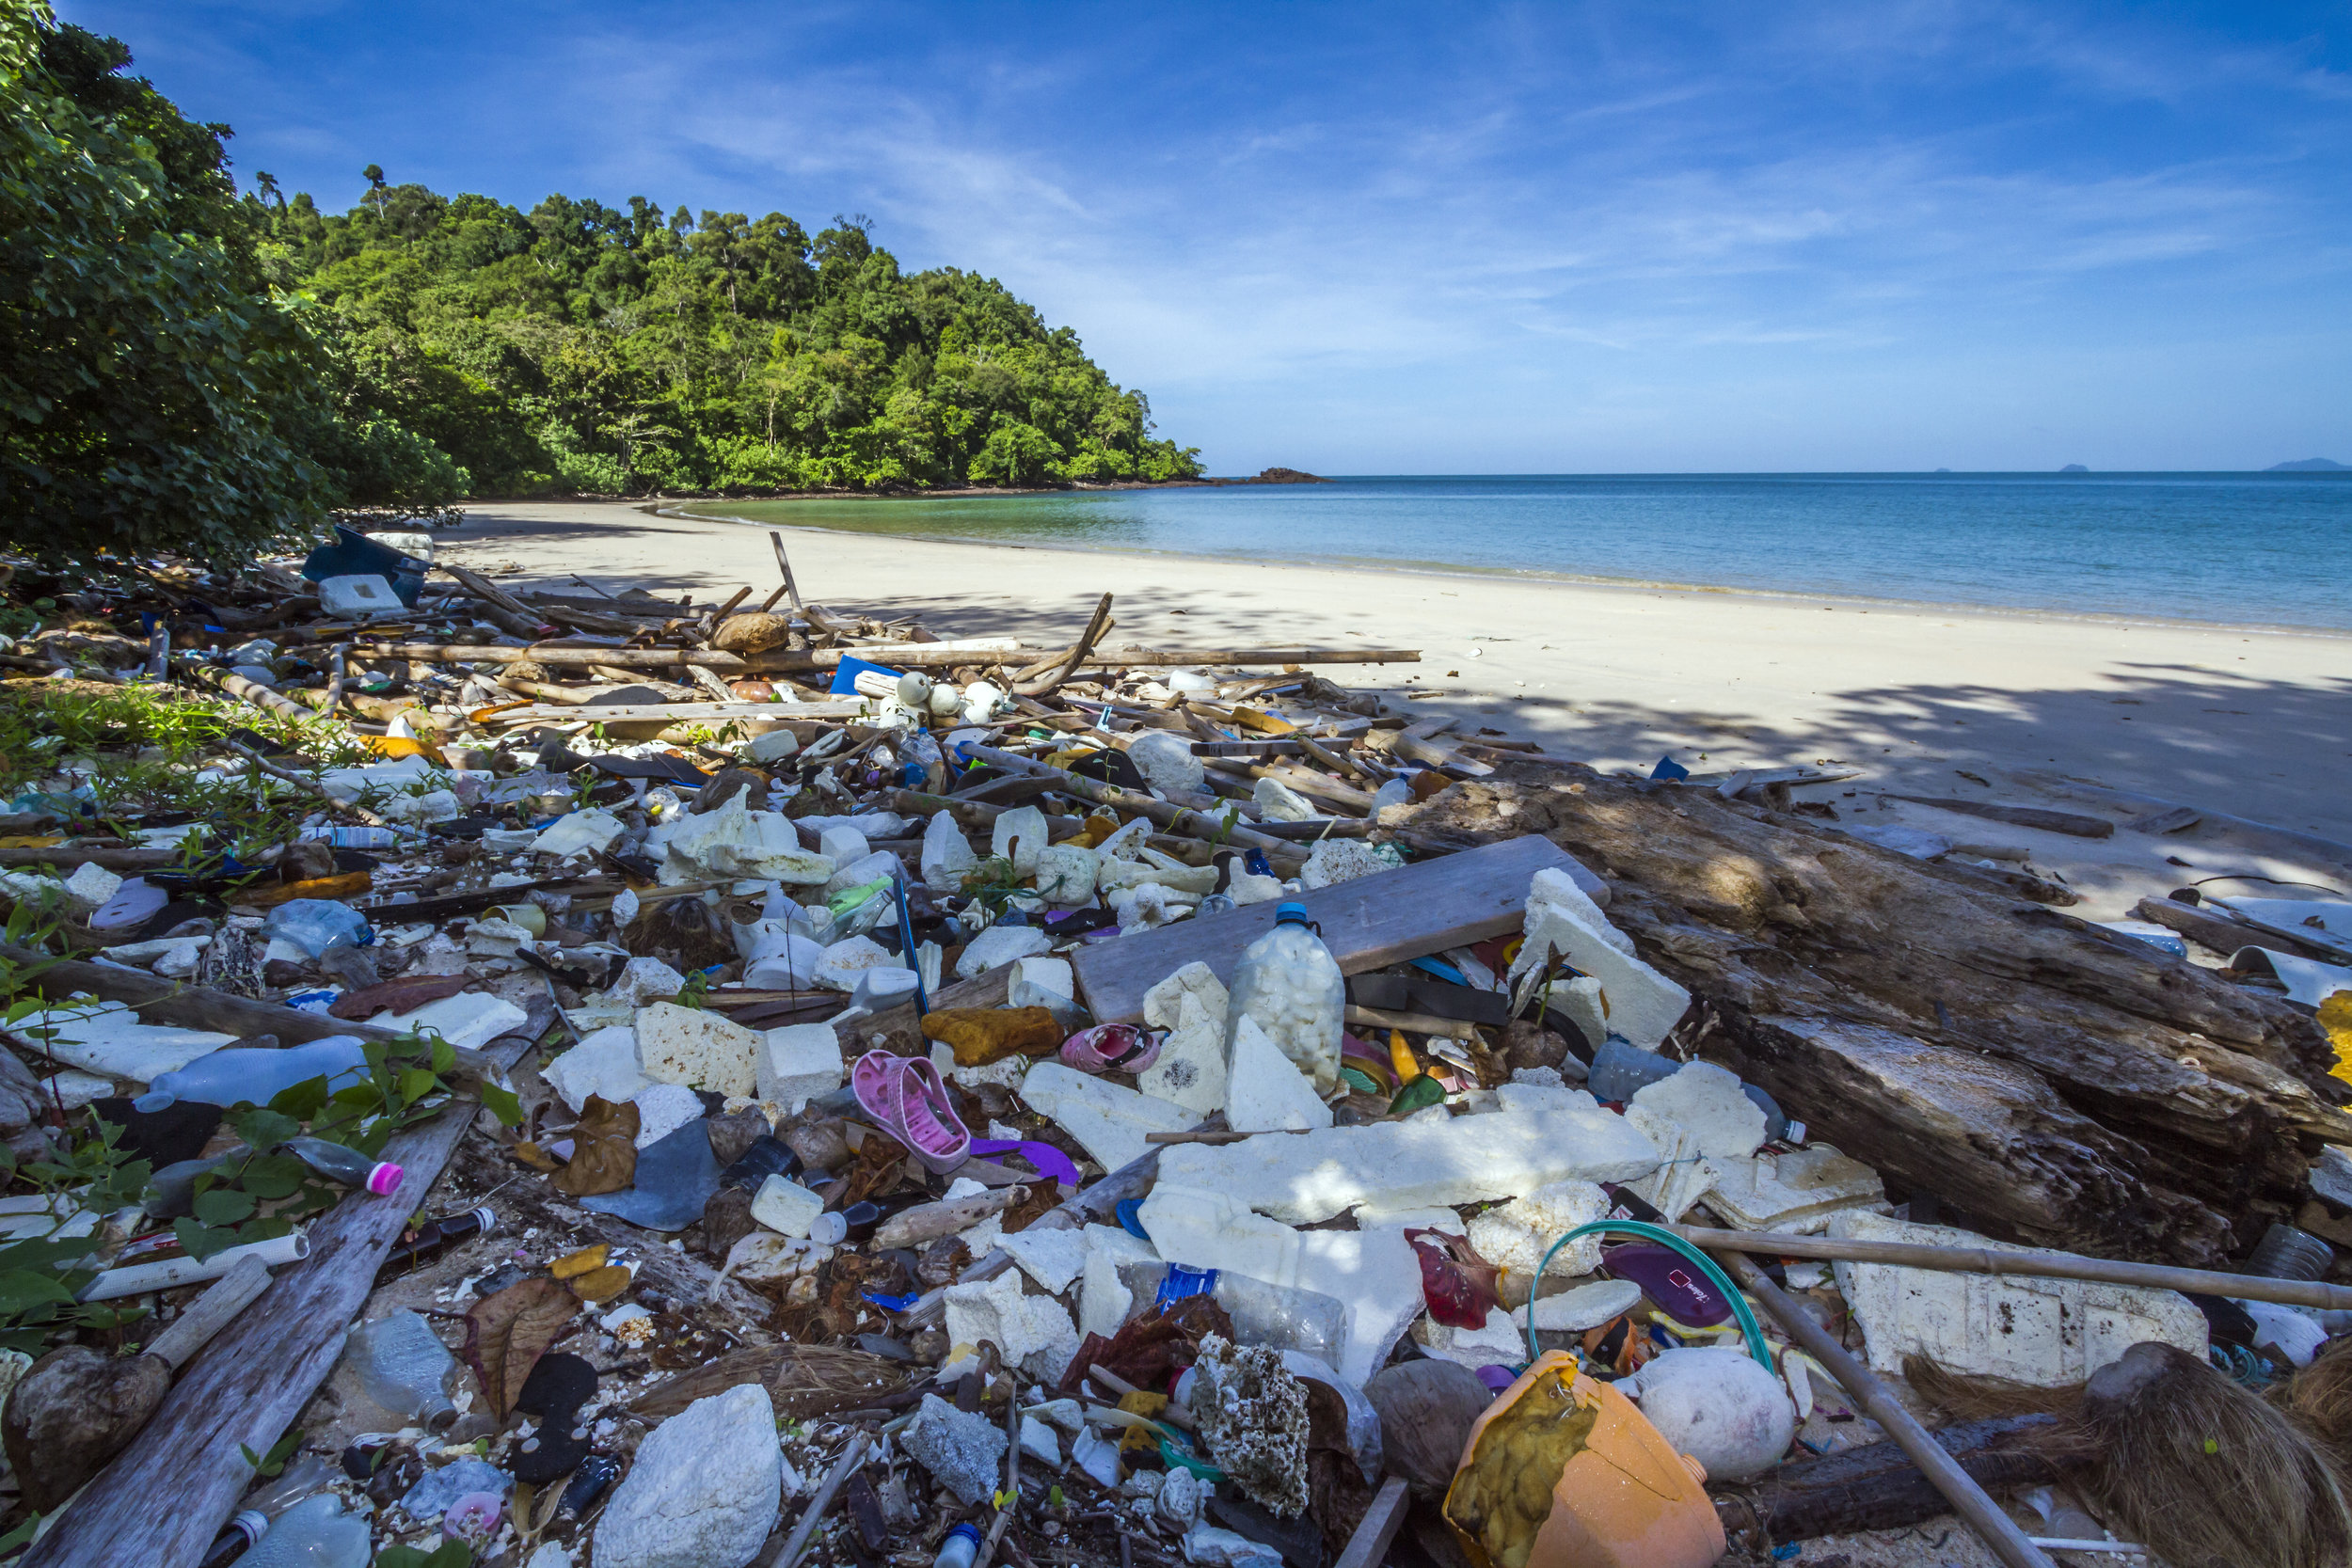 Plastic has overtaken our beaches and waters.